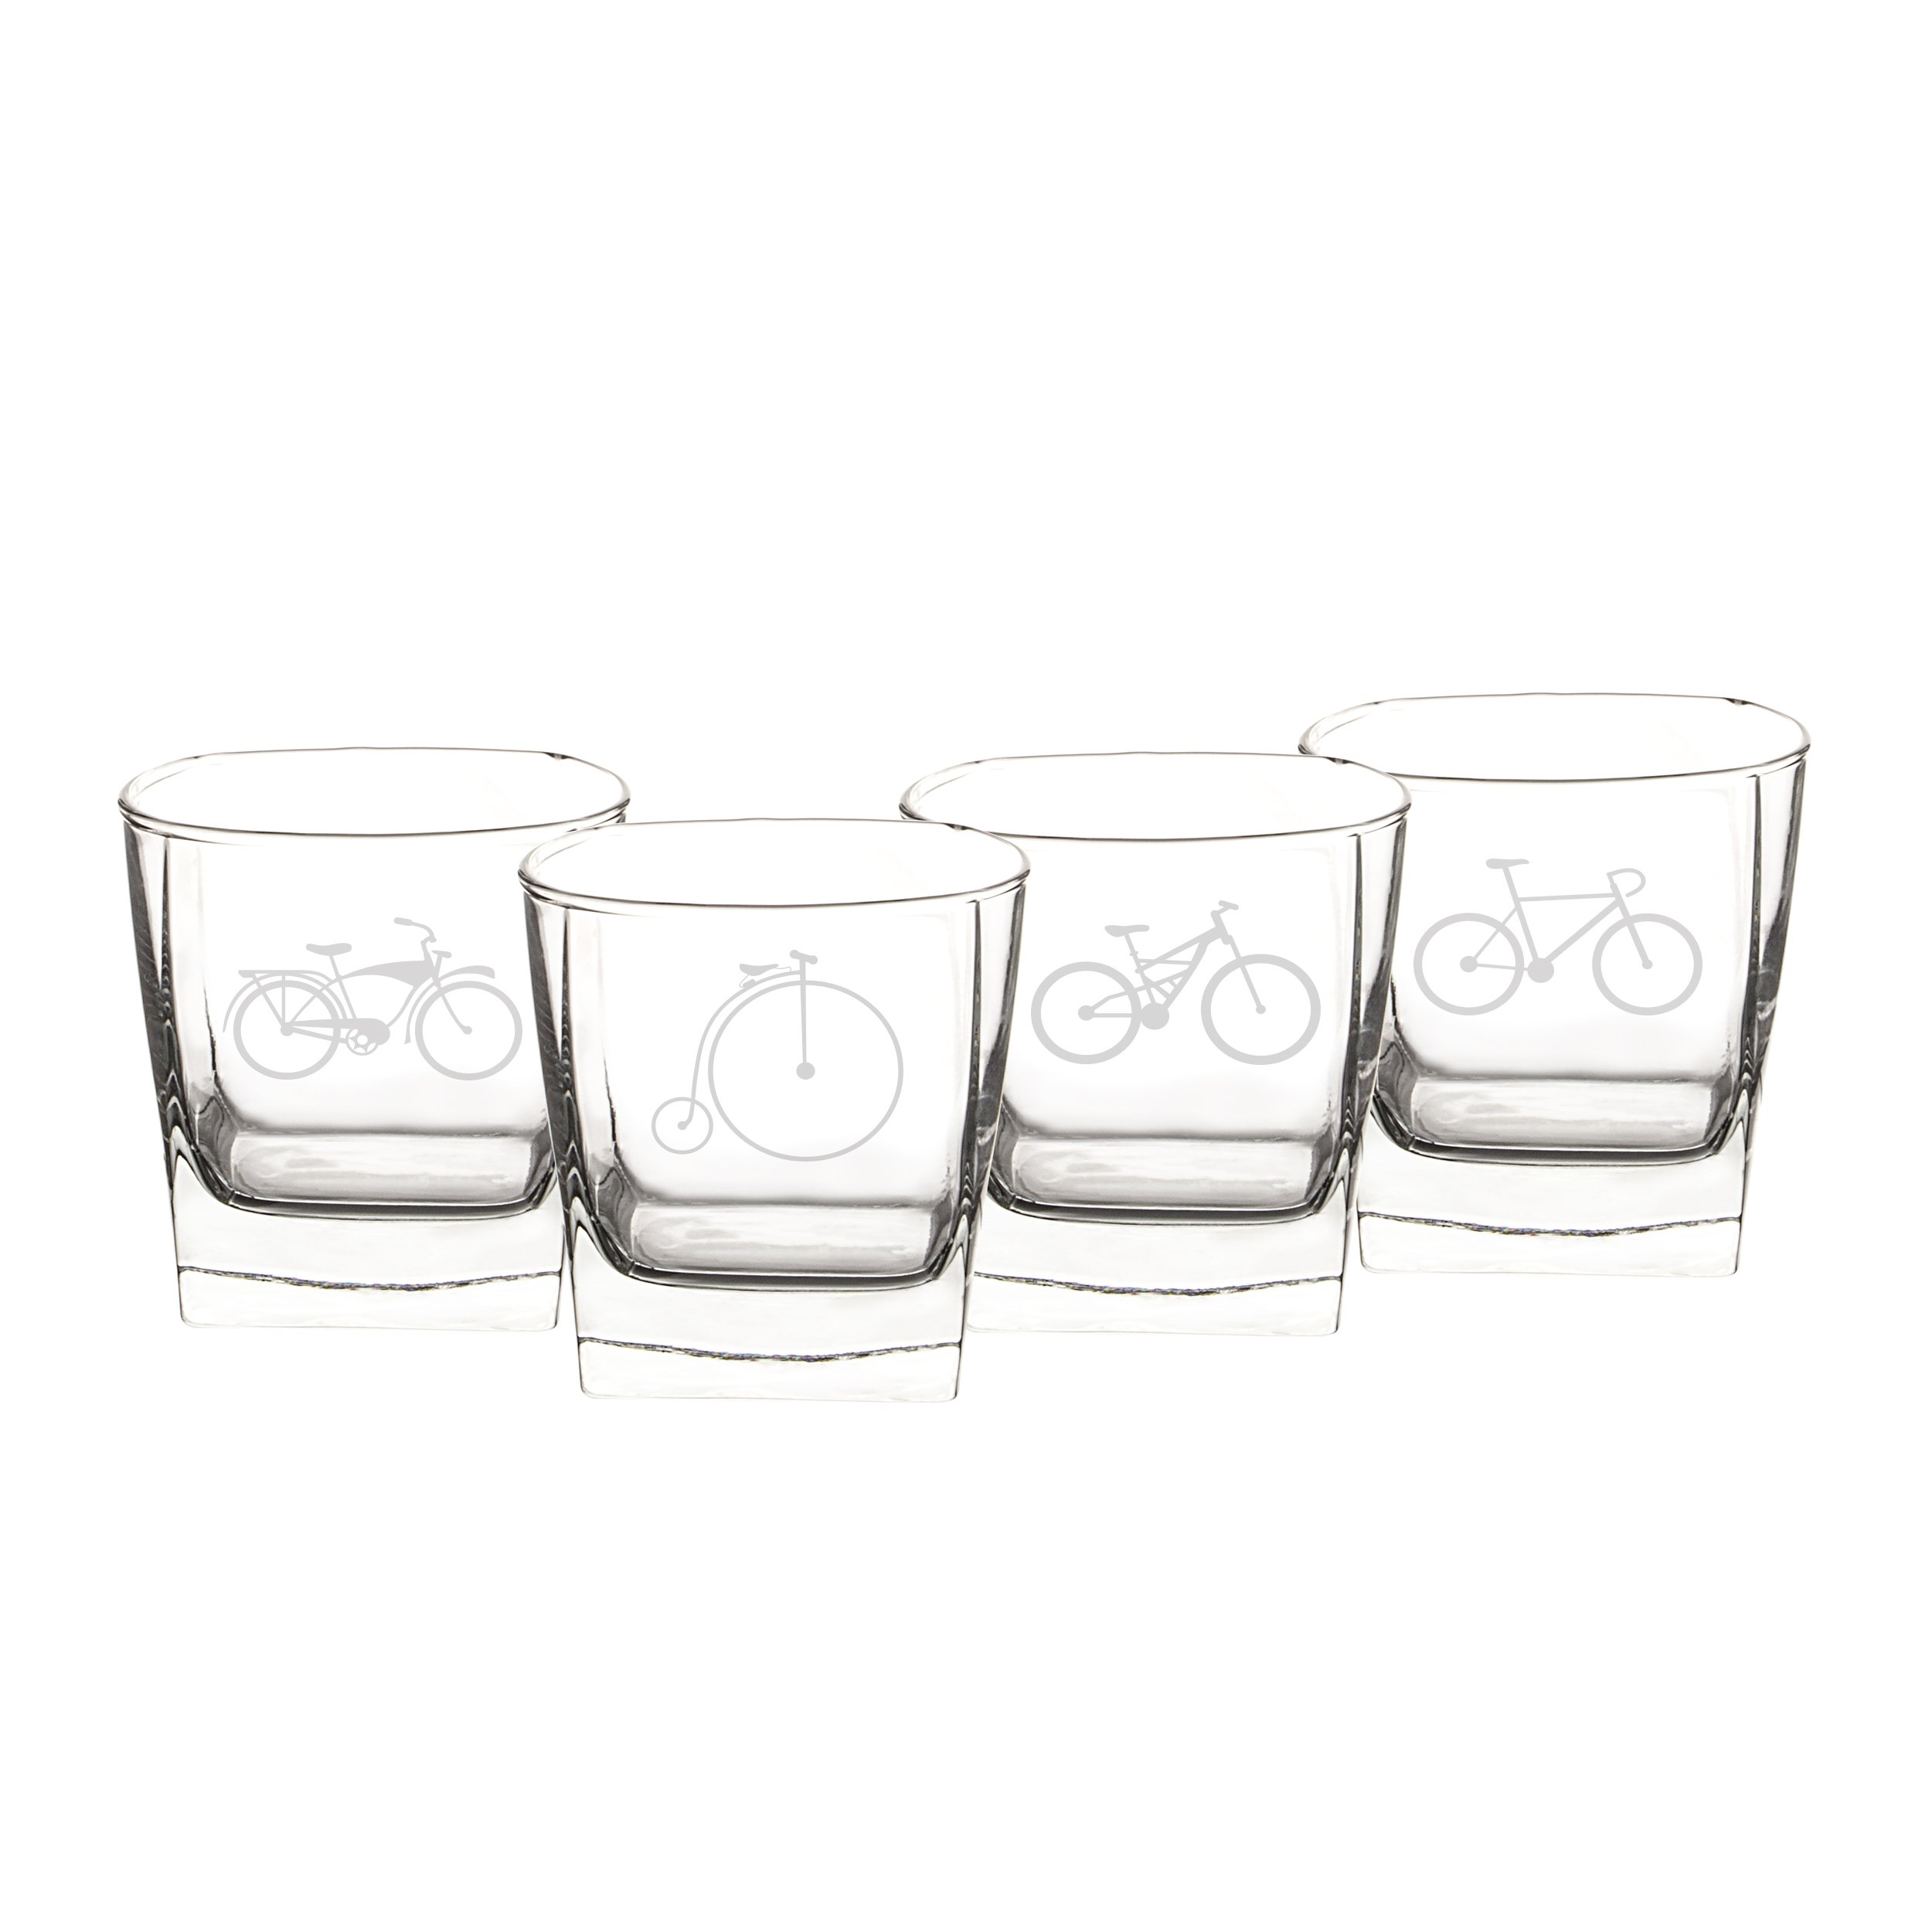 Cathy's Concepts Bicycle Rocks Glasses (Set of 4)